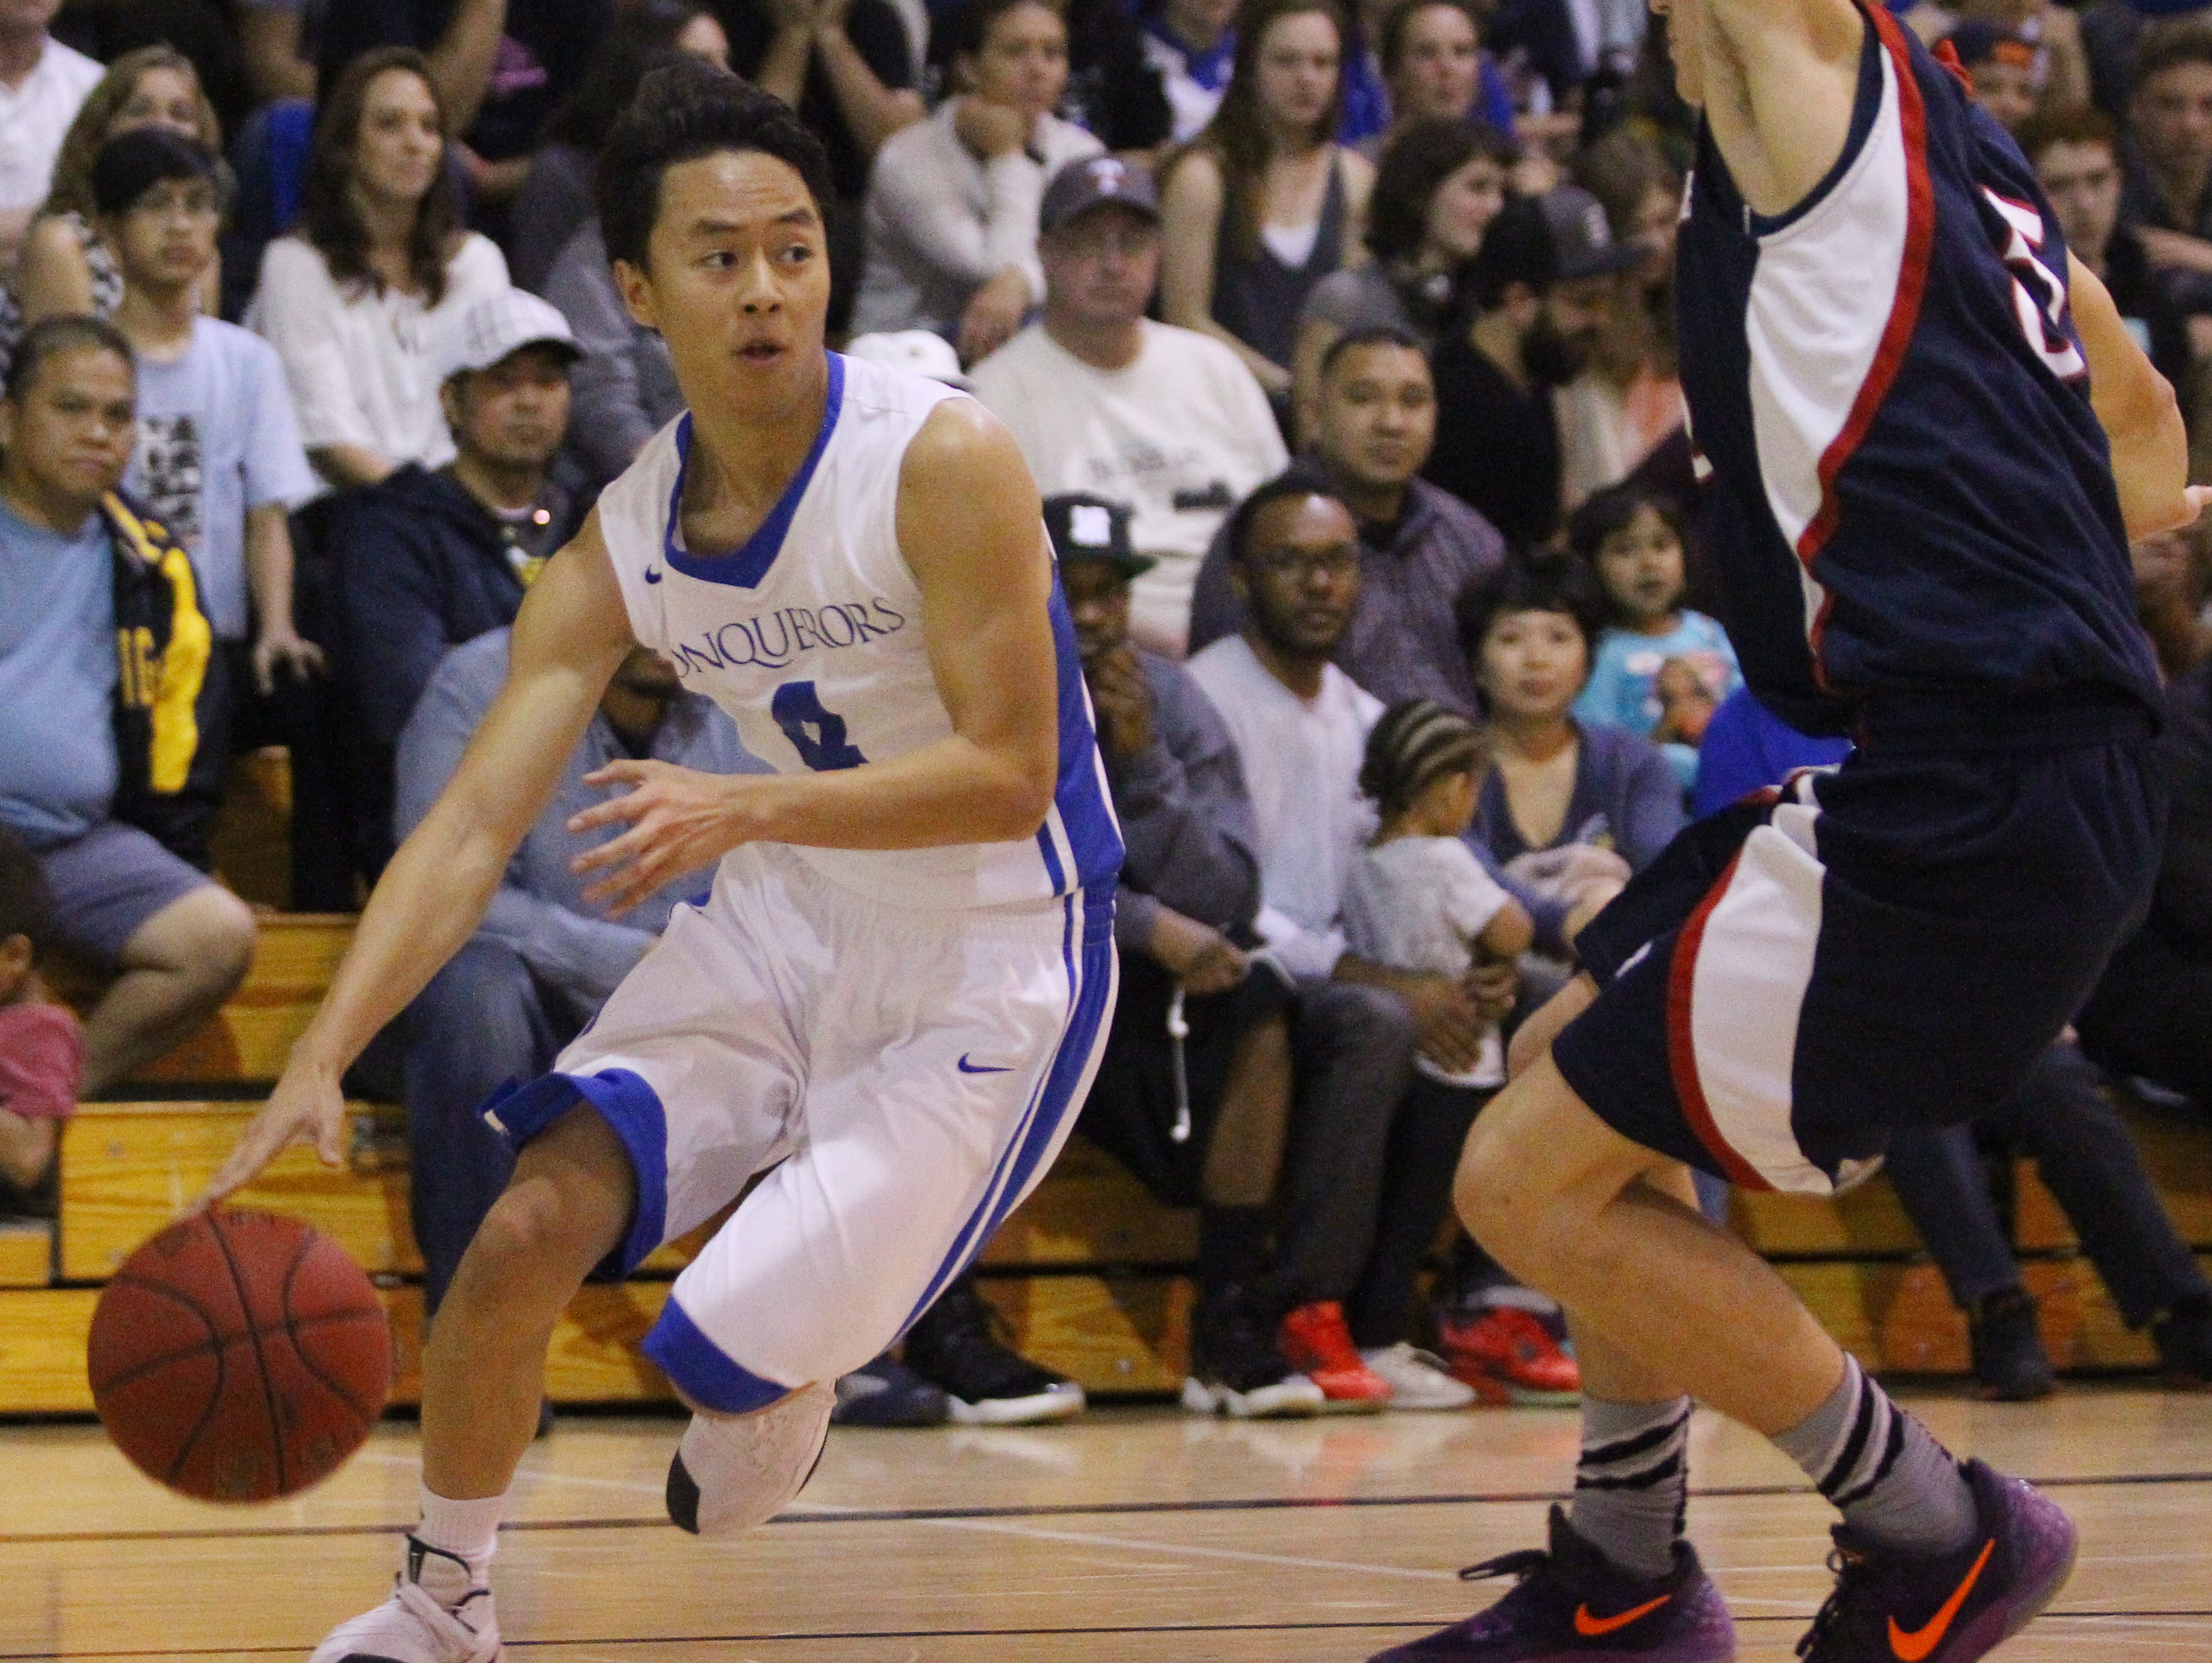 Desert Christian Academy's Kelvin Wong brings the ball up court against Providence High School (Santa Barbara) at Bermuda Dunes on February 21, 2017. DCA advances in CIF playoffs.